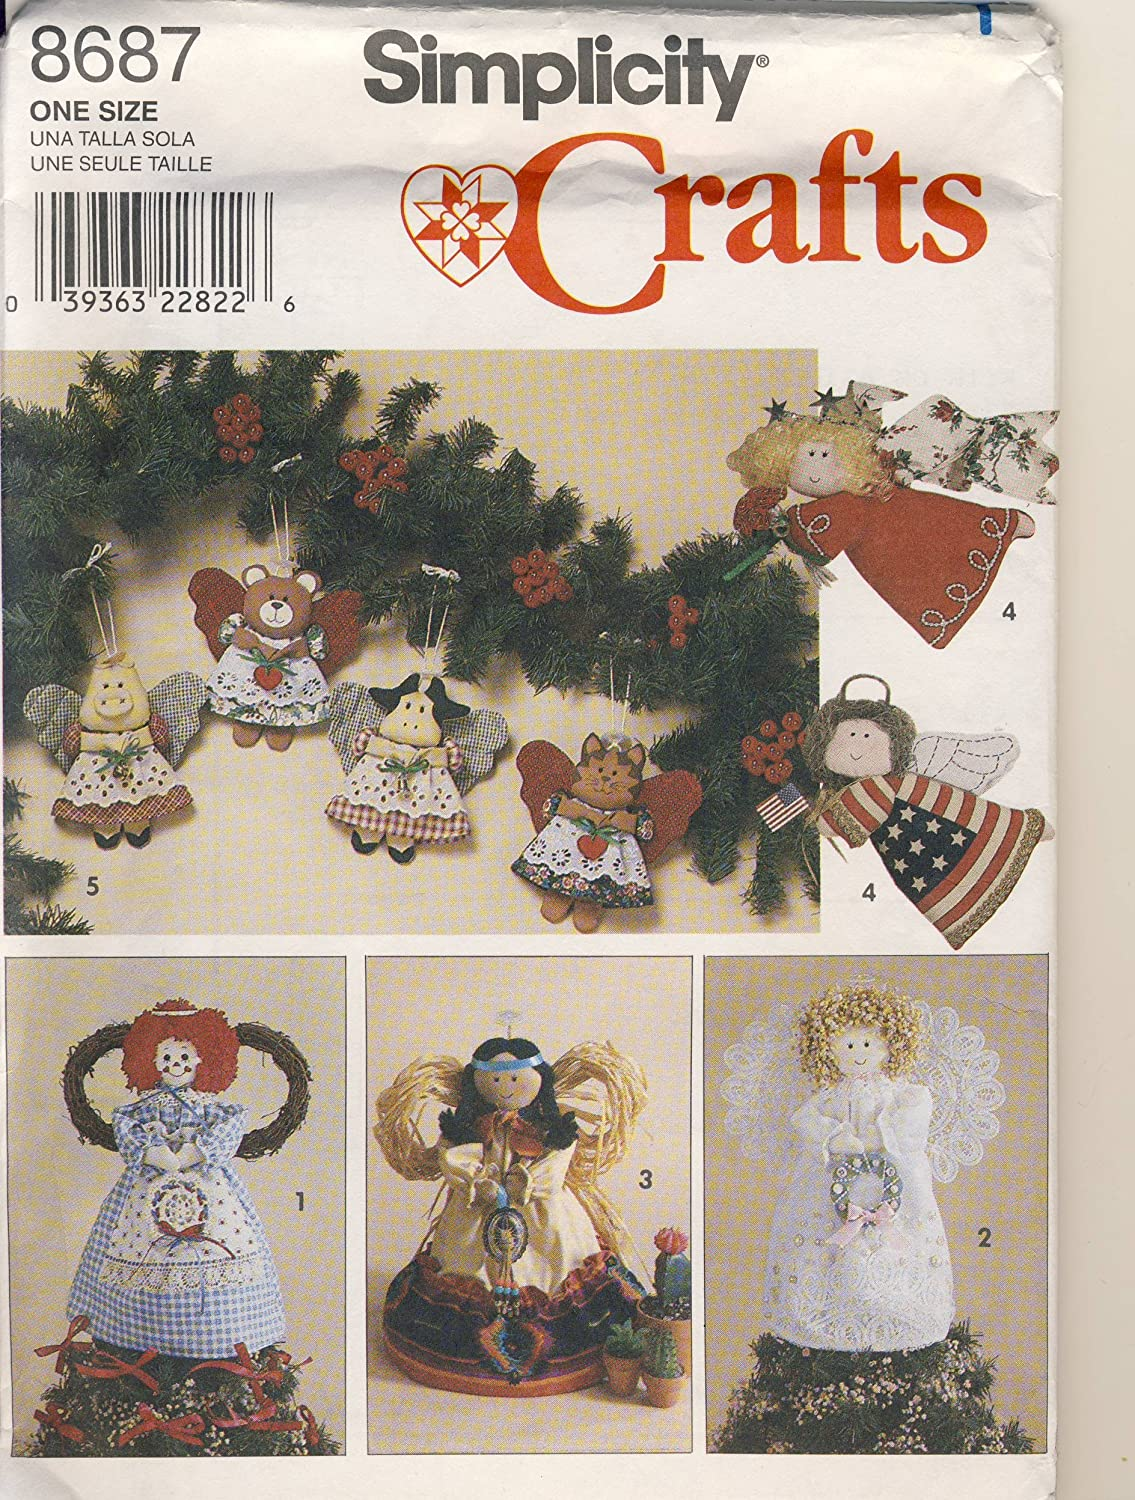 Simplicity Crafts Sewing Pattern 8687 - Use to Make - Angel Tree Topper or Standing Decoration and Angel Ornaments in 2 Sizes Simplicity Pattern Co.